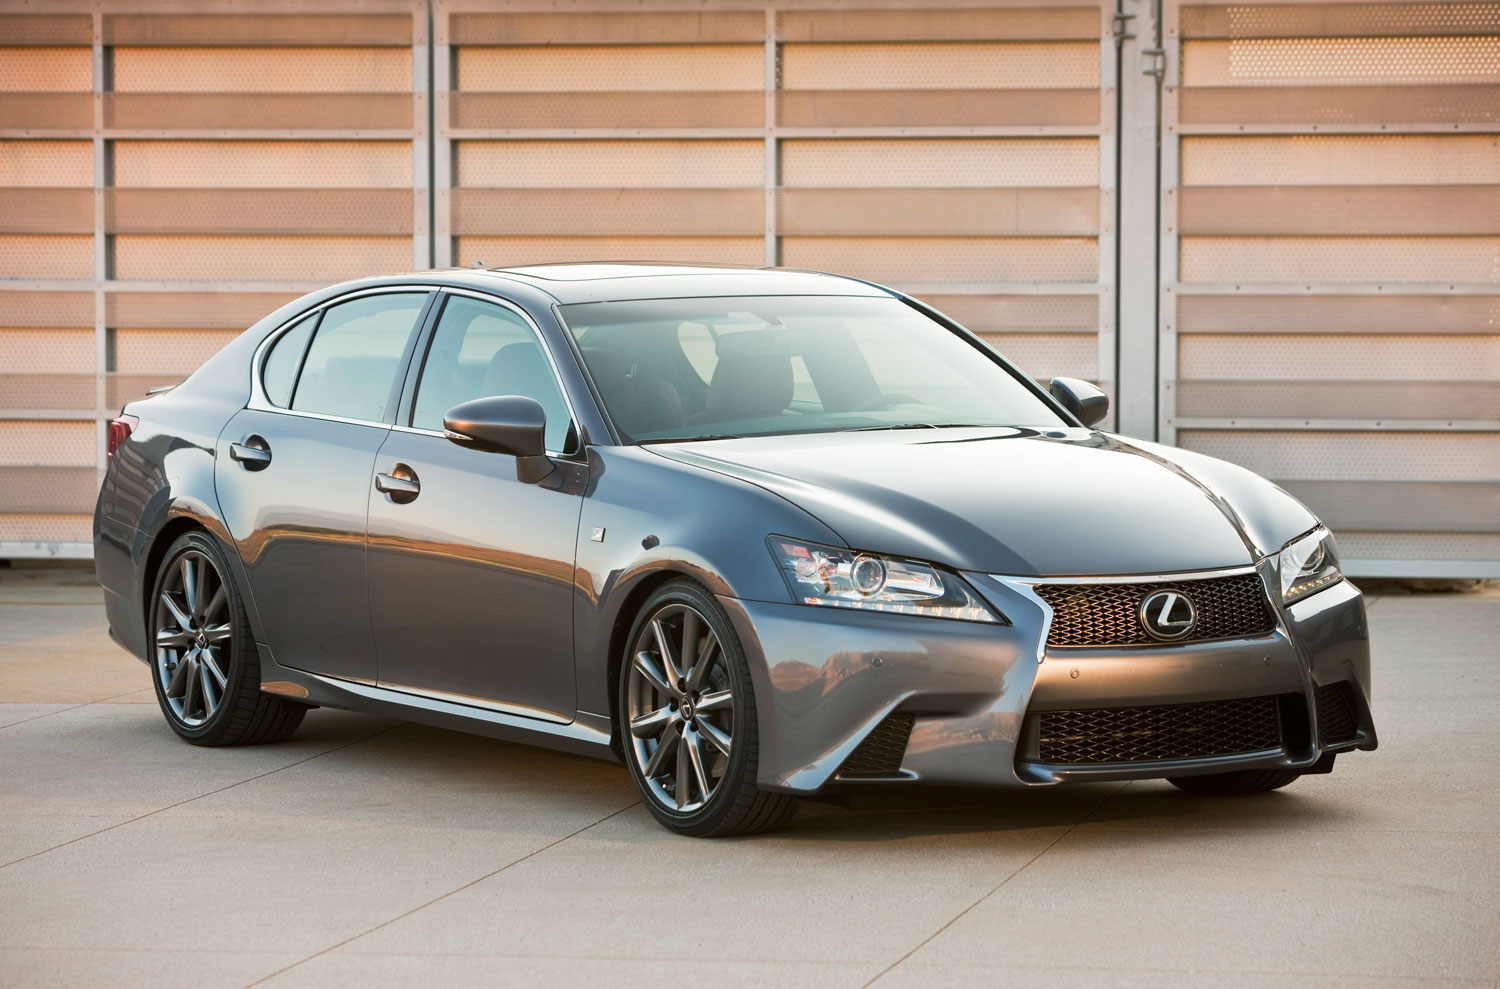 Lexus to Show 2013 GS 350 F SPORT and Other Custom Cars at SEMA ...